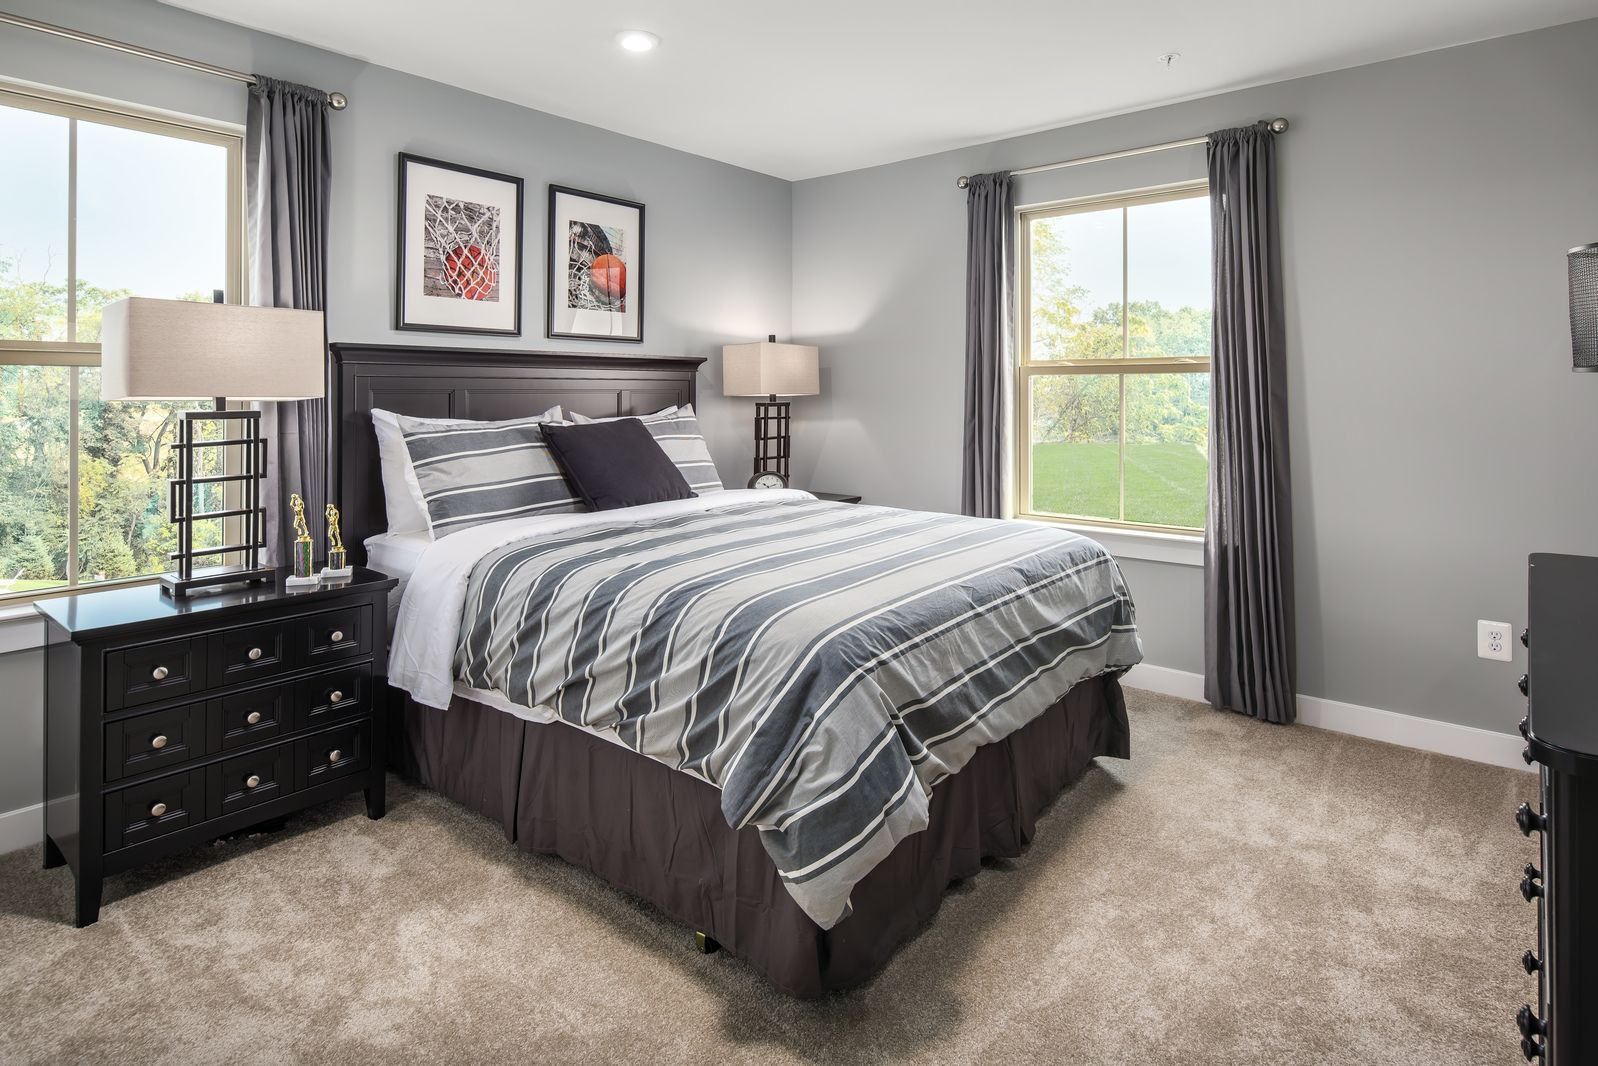 Bedroom featured in the Roanoke By Ryan Homes in Washington, MD